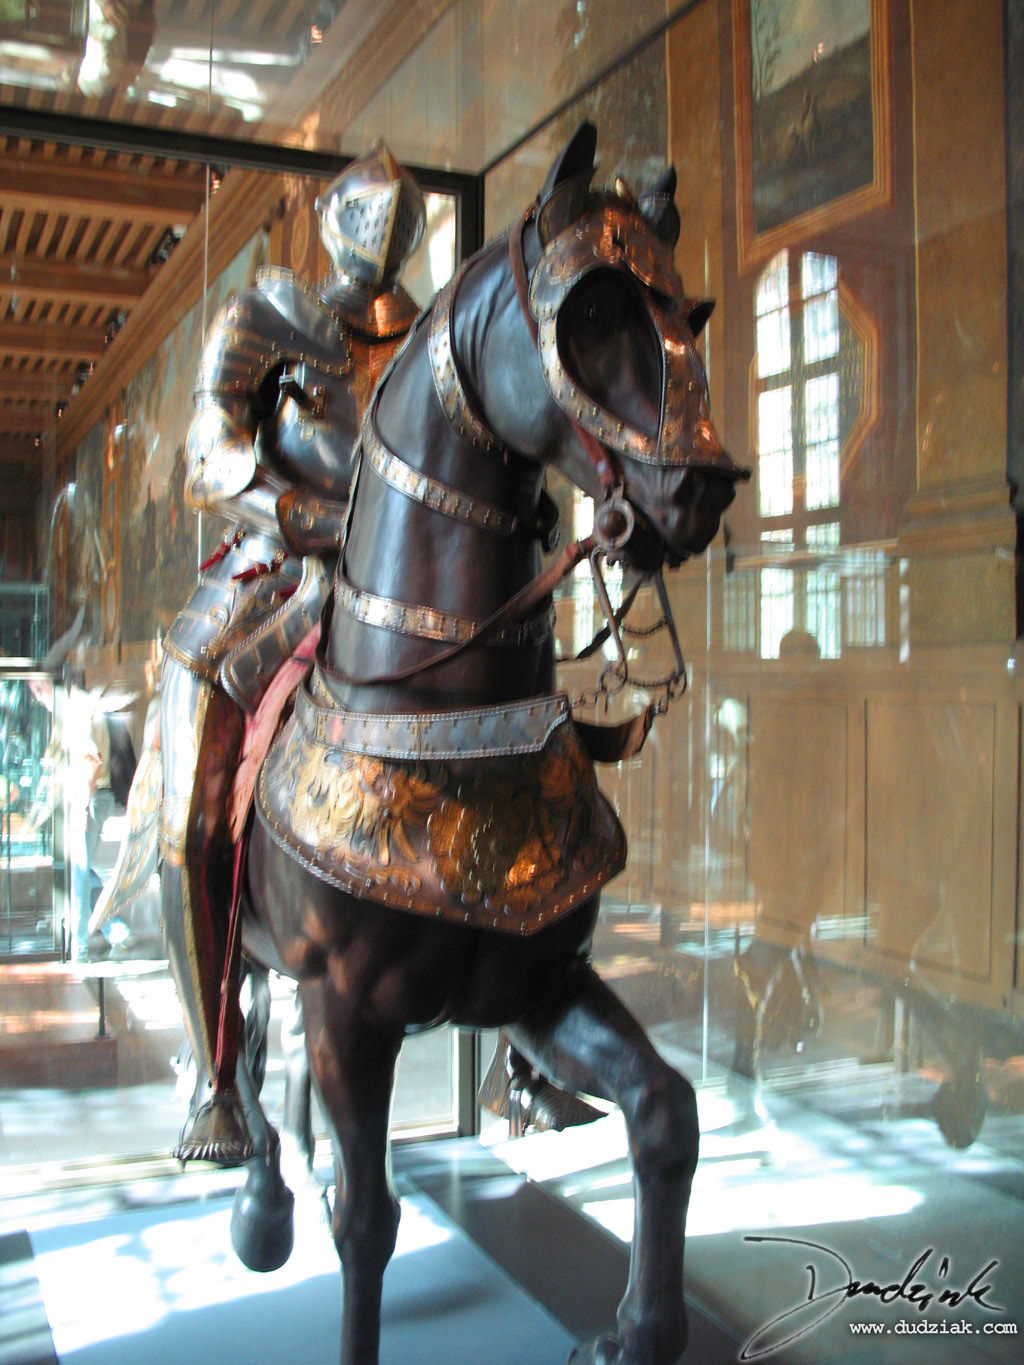 Military Museum,  Paris France,  Les Invalides,  knight,  french knight